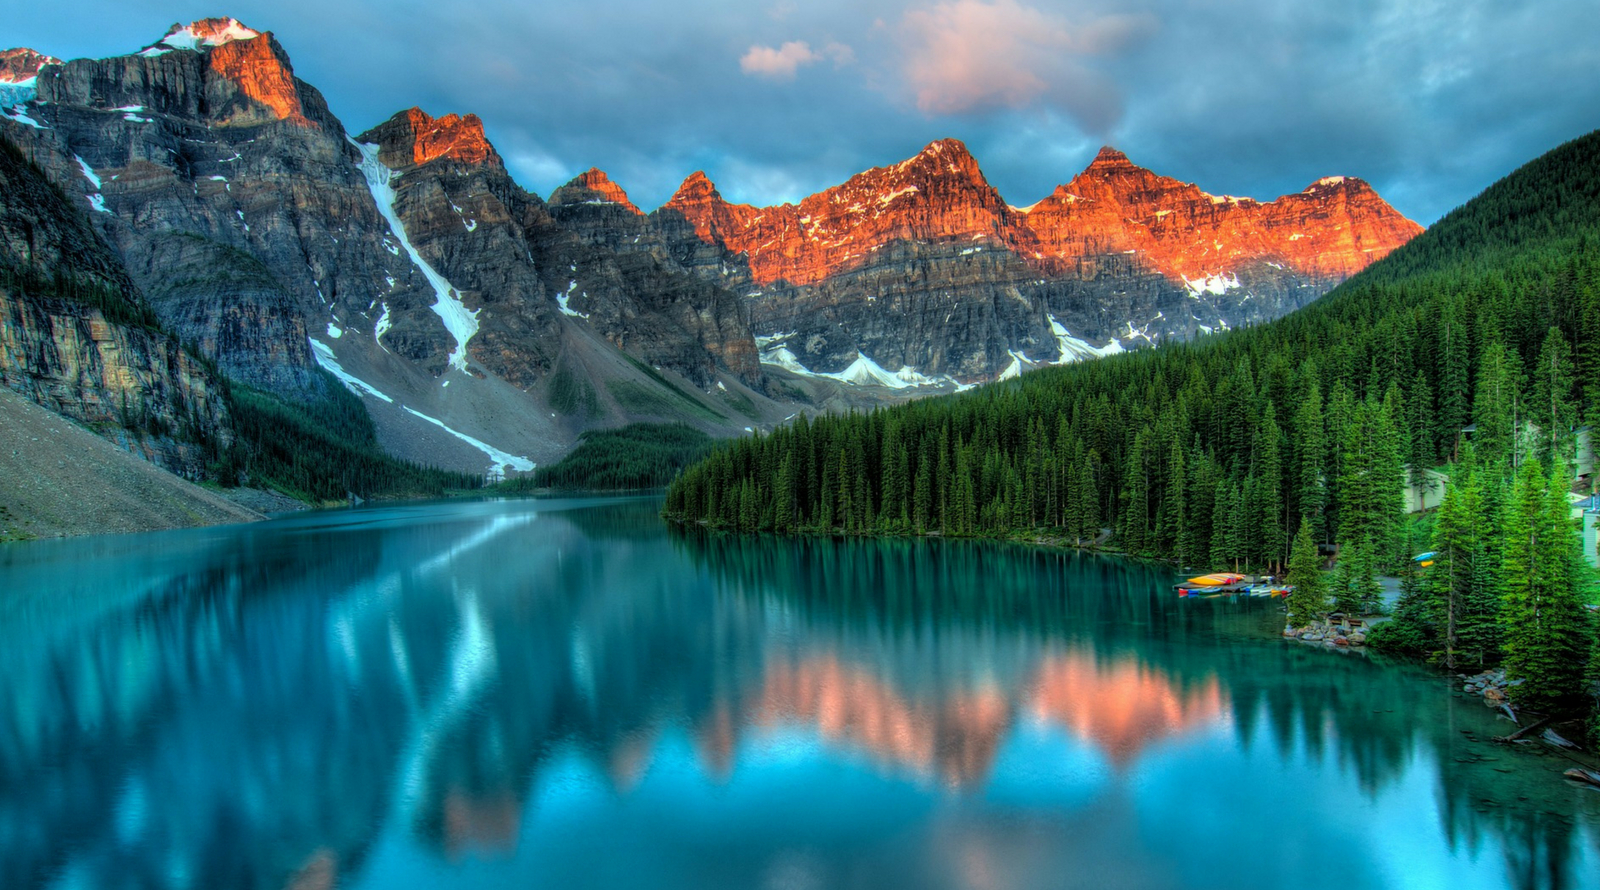 The ultimate guide to mountain photography